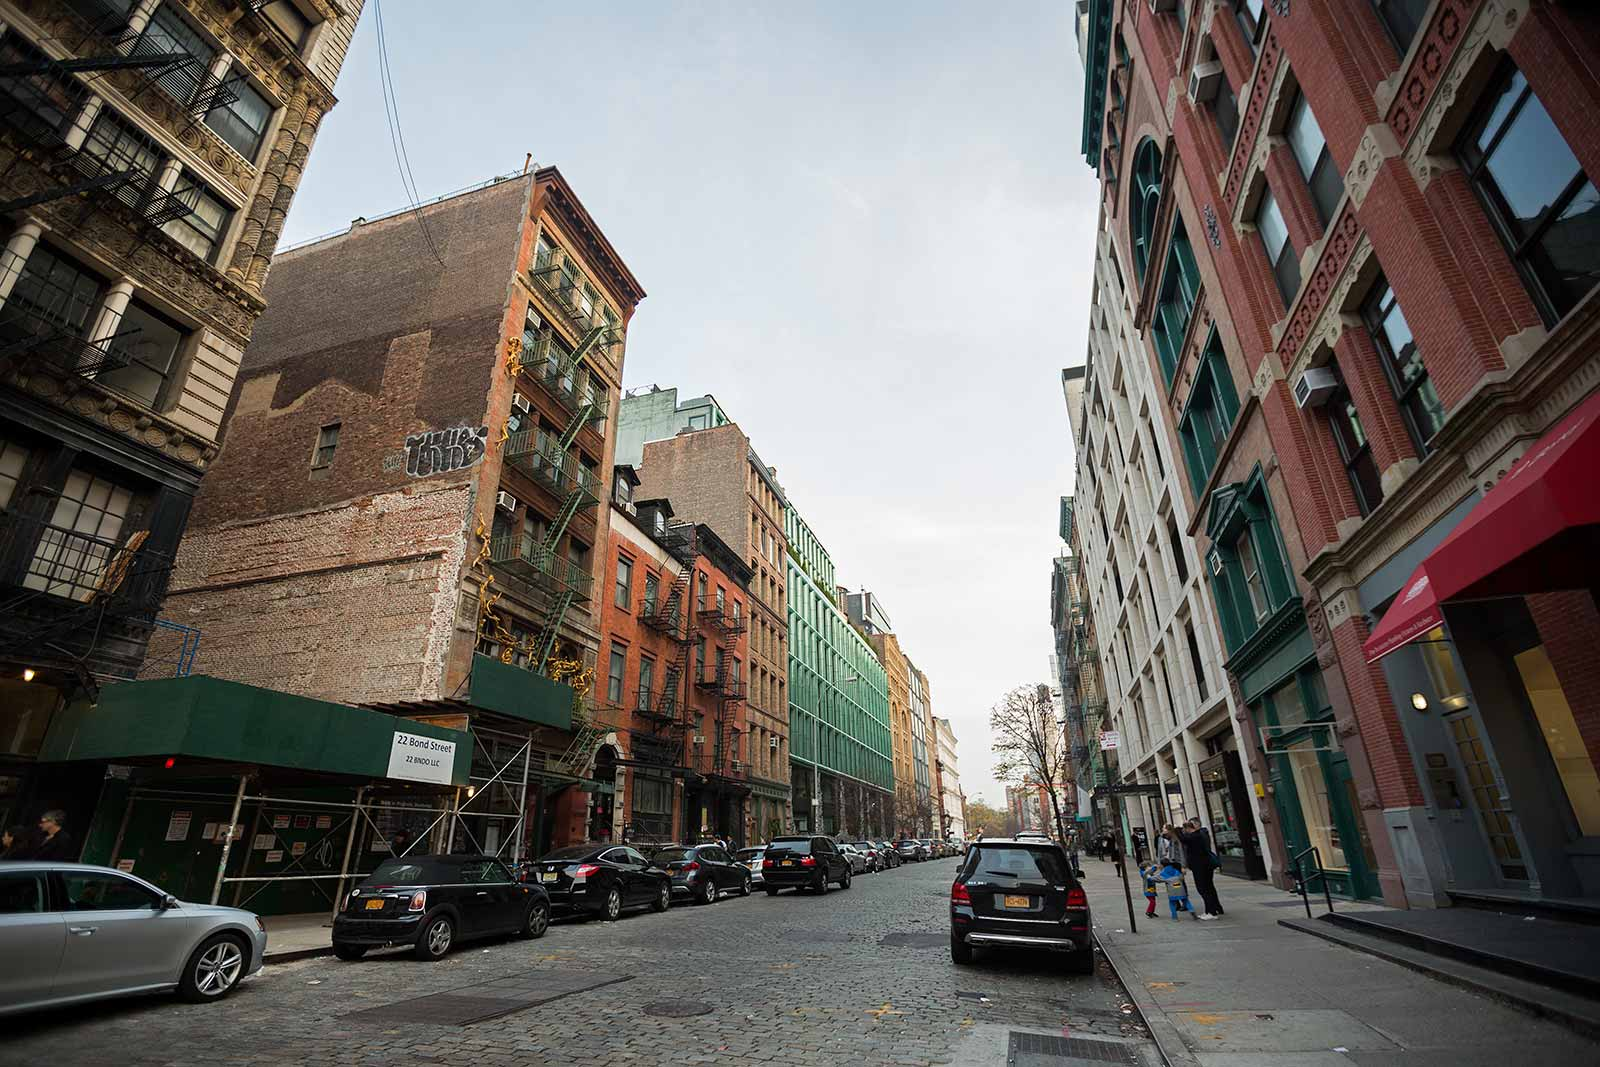 Soho is home to a vibrant artistic community, which makes this my favourite place in New York City.